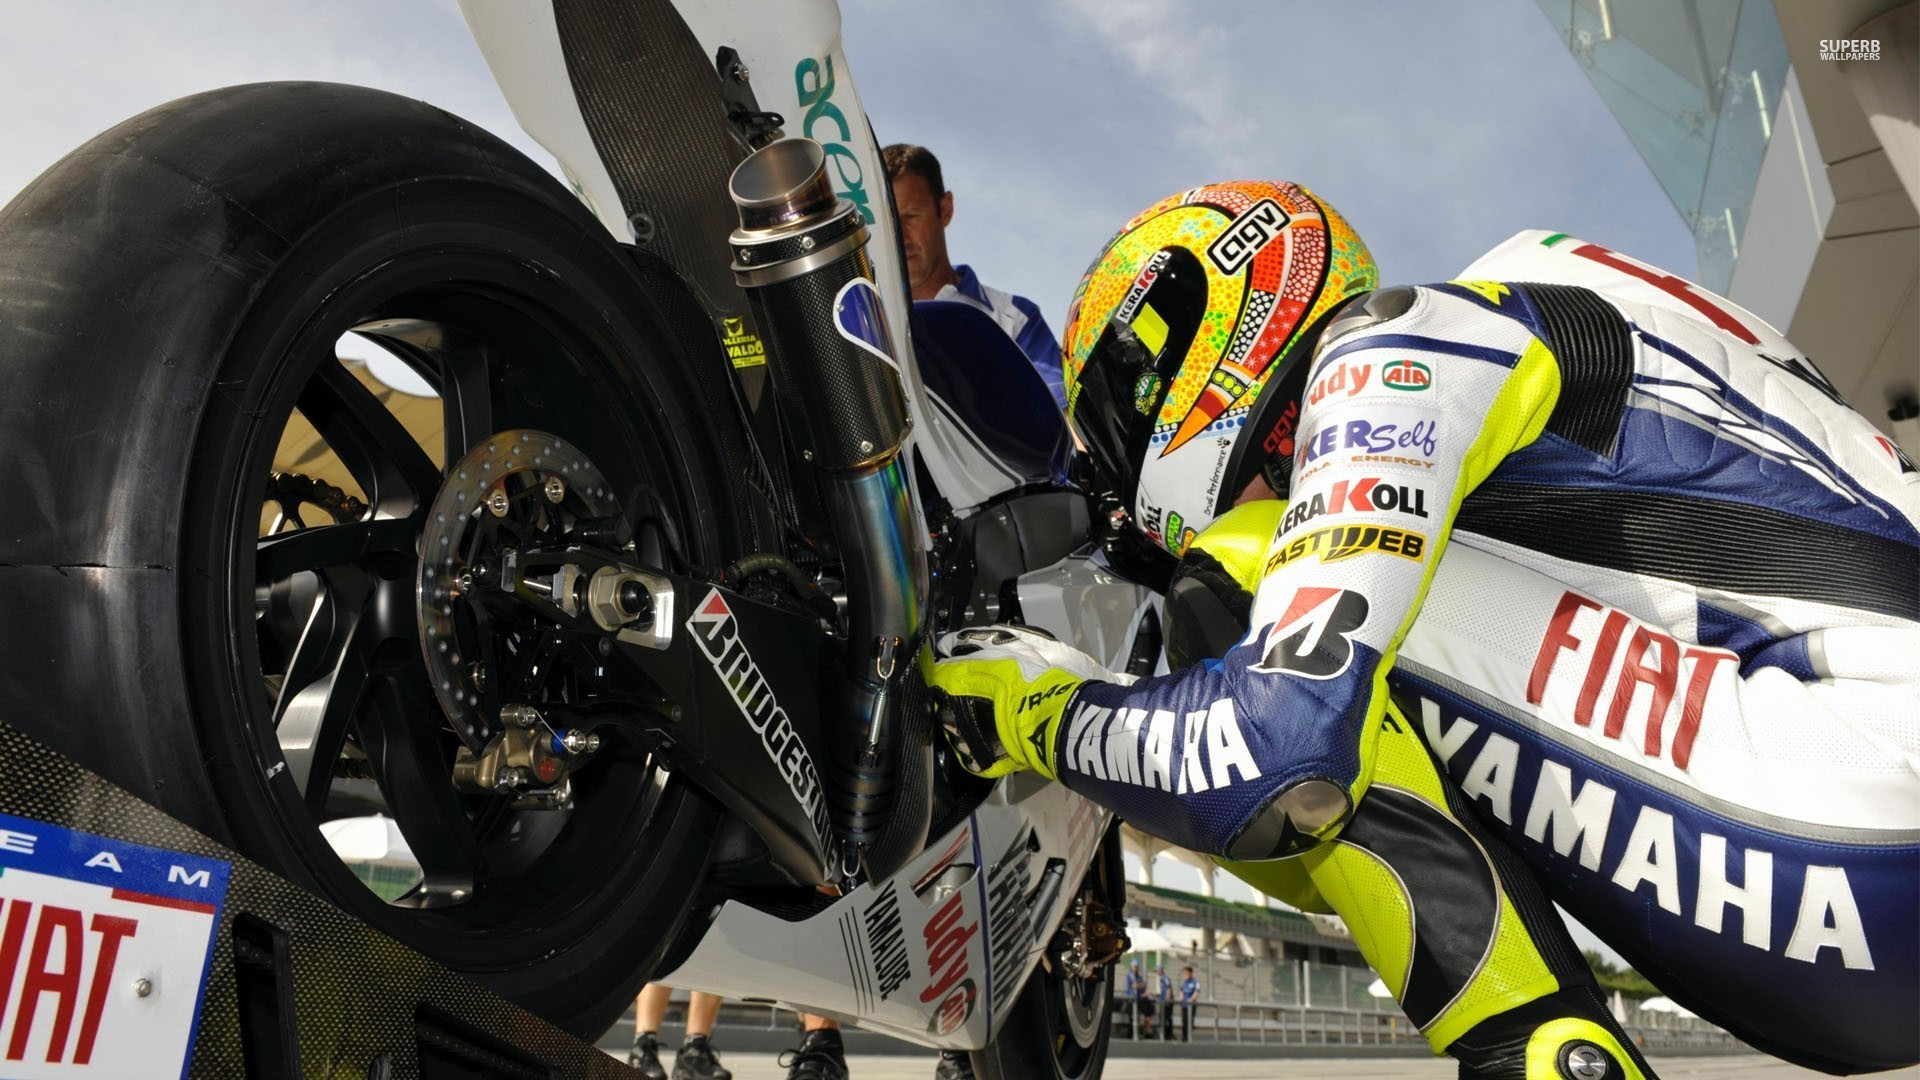 Valentino Rossi hd wallpapers Page High Resolution Wallarthd Valentino Rossi images Vale HD wallpaper and background photos 1920x1080